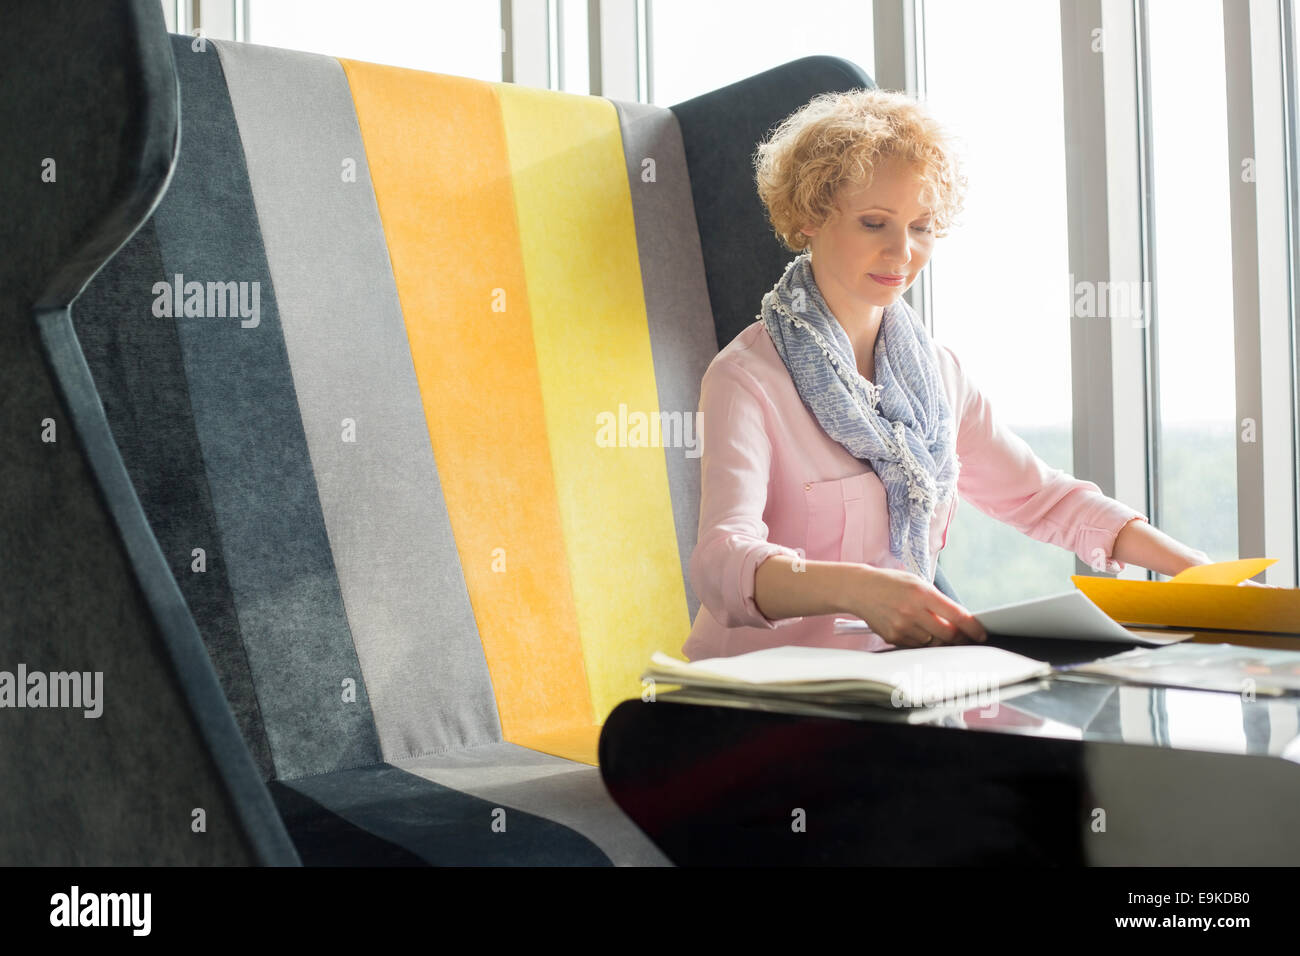 Mid adult businesswoman reading documents at desk in office - Stock Image